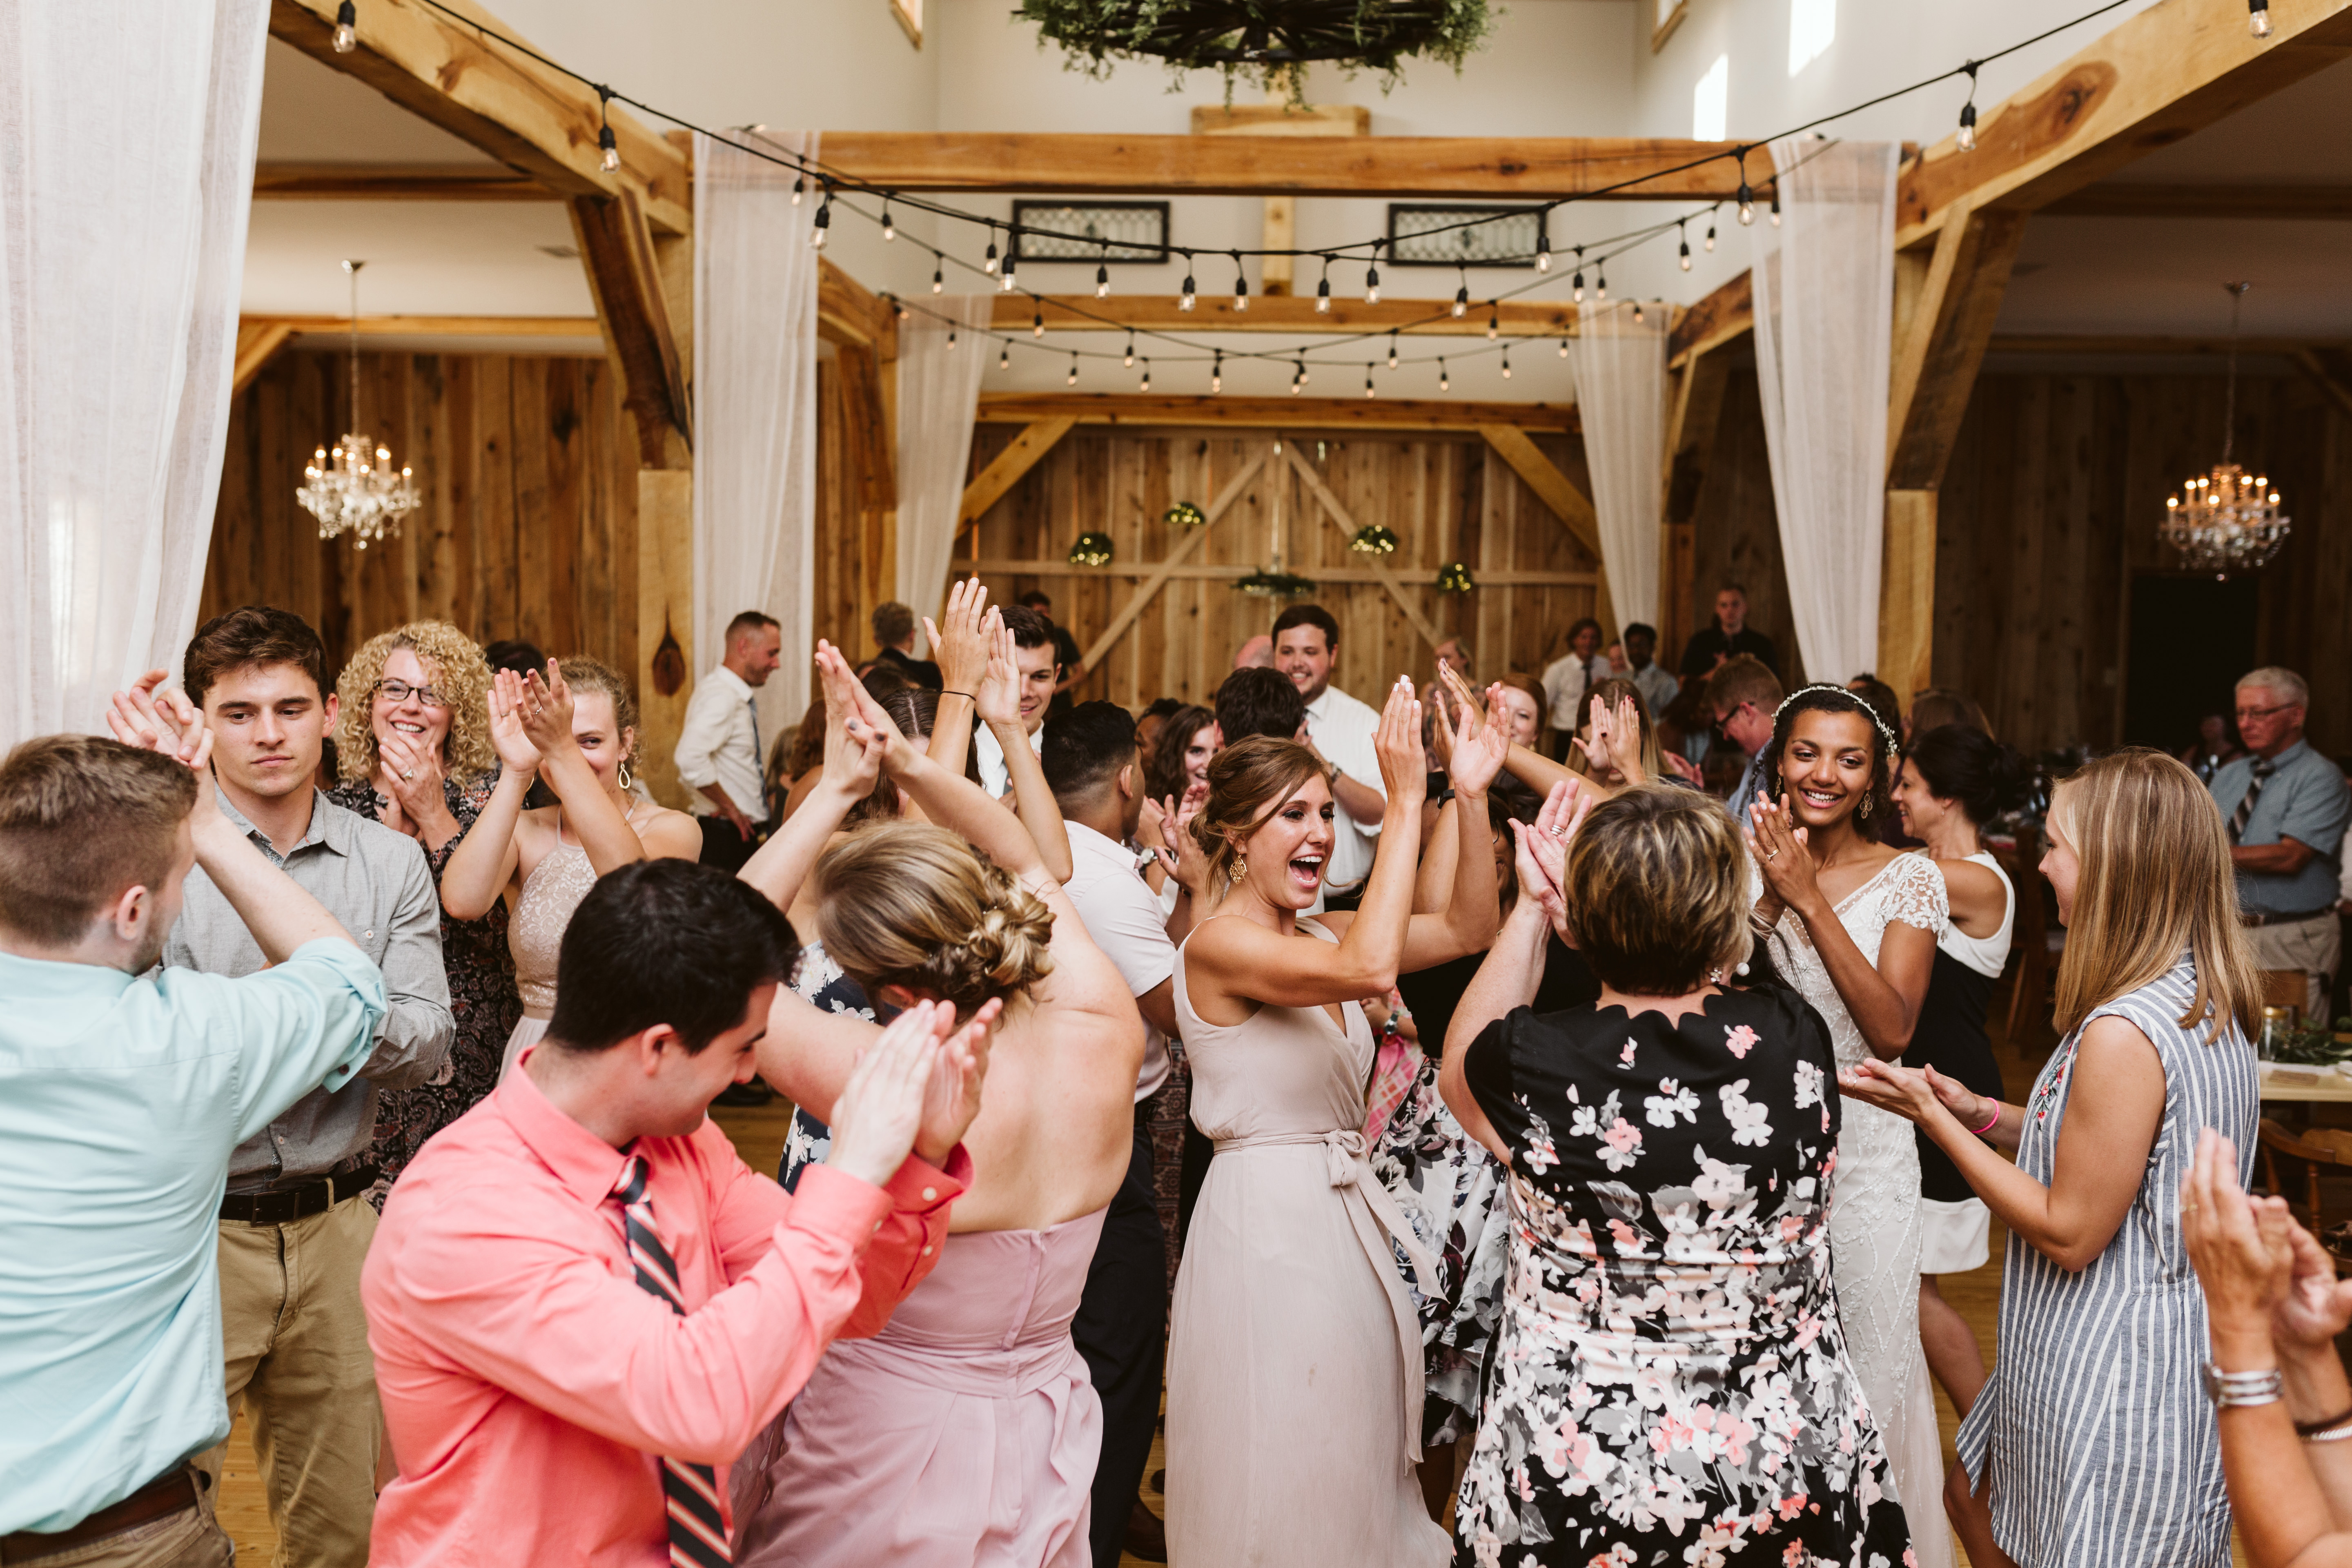 Guests having a blast on the dance floor at White Pine Grove!